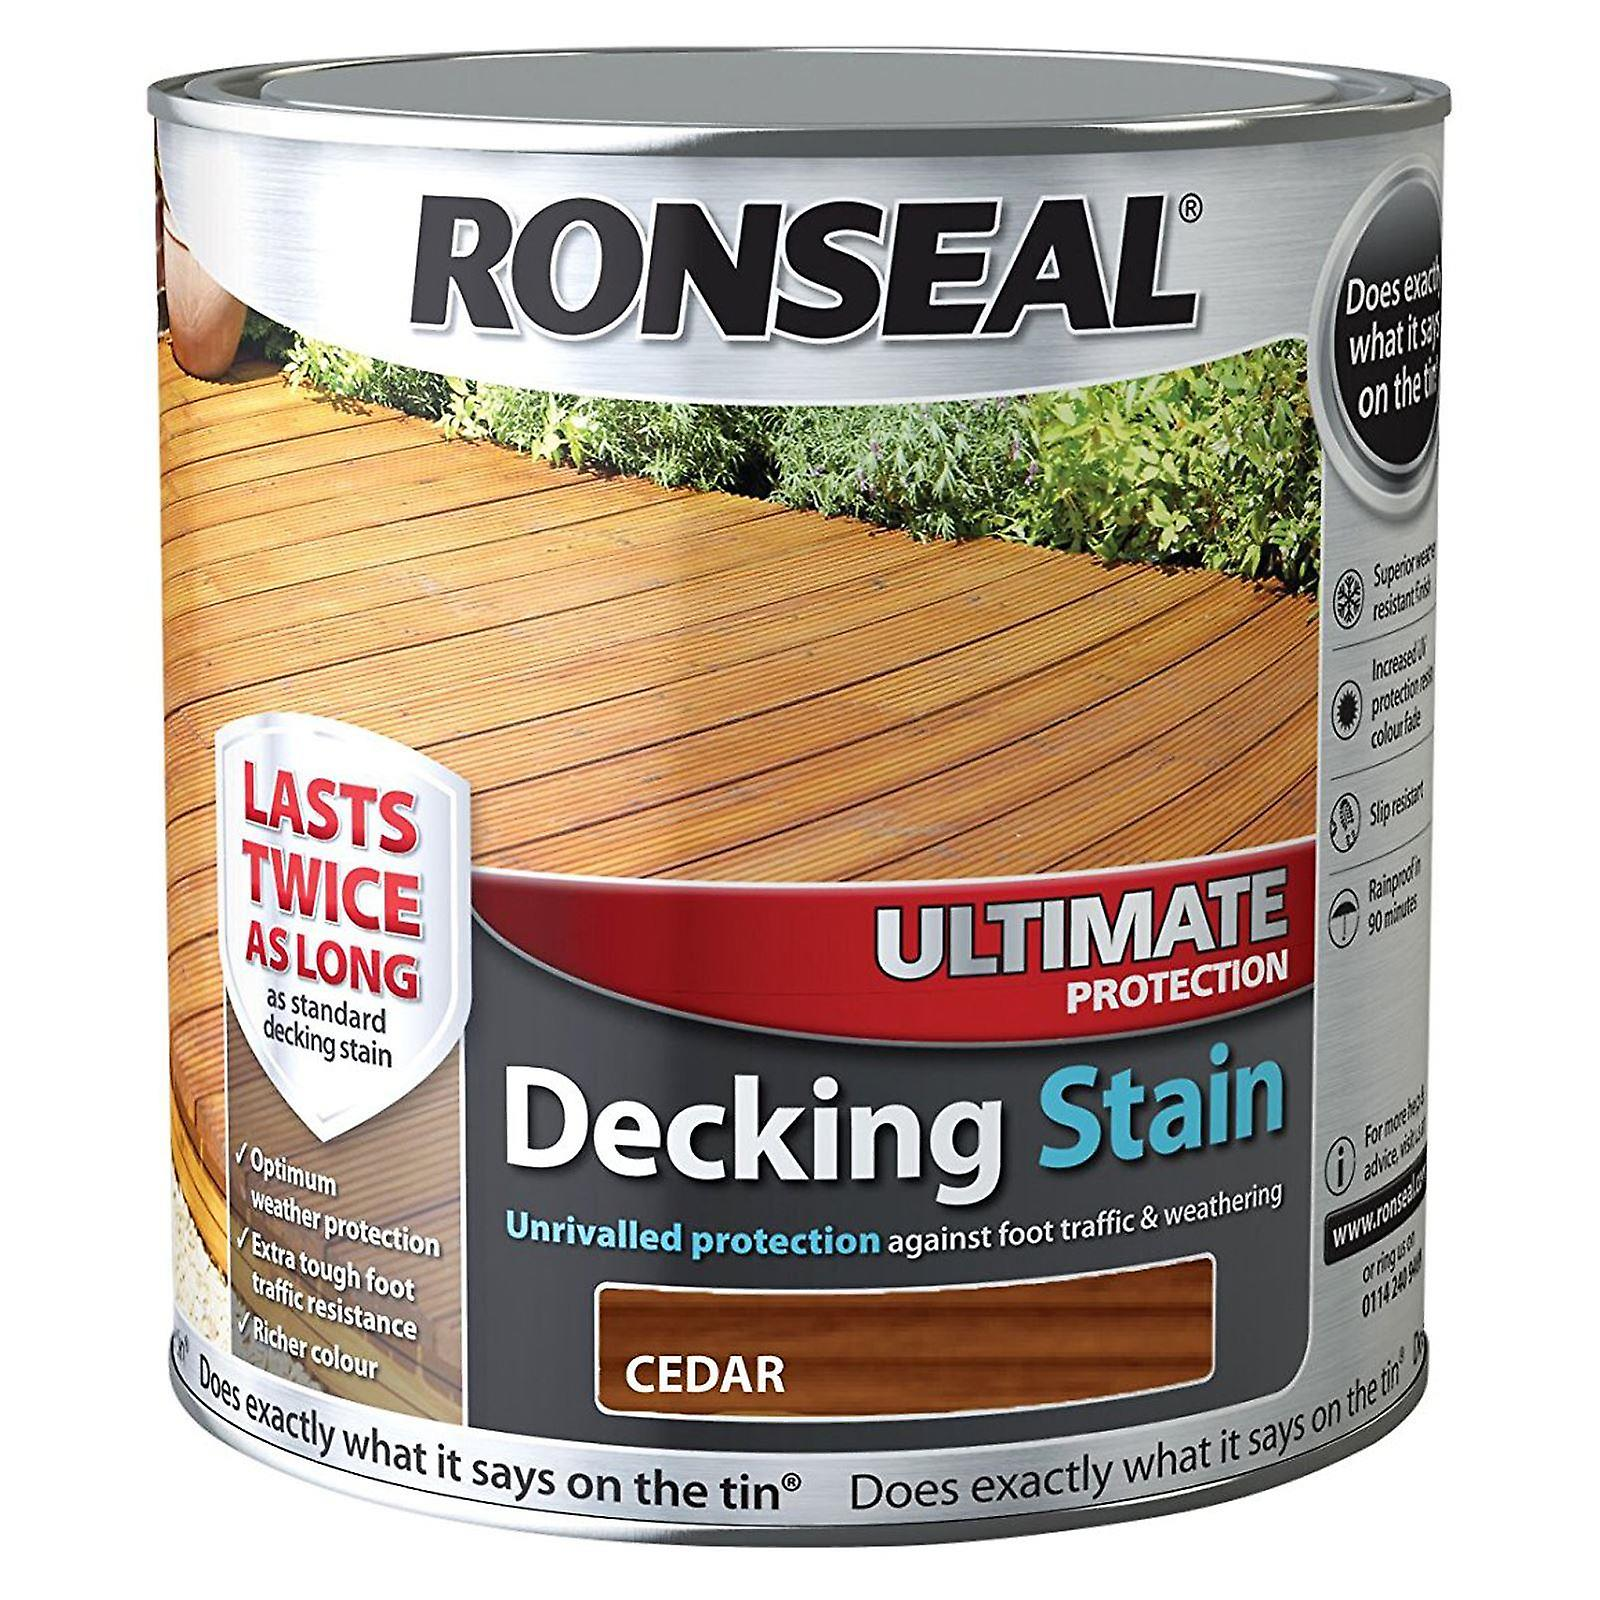 Ronseal 2.5 Litre Ultimate Protection Decking Stain - Cedar